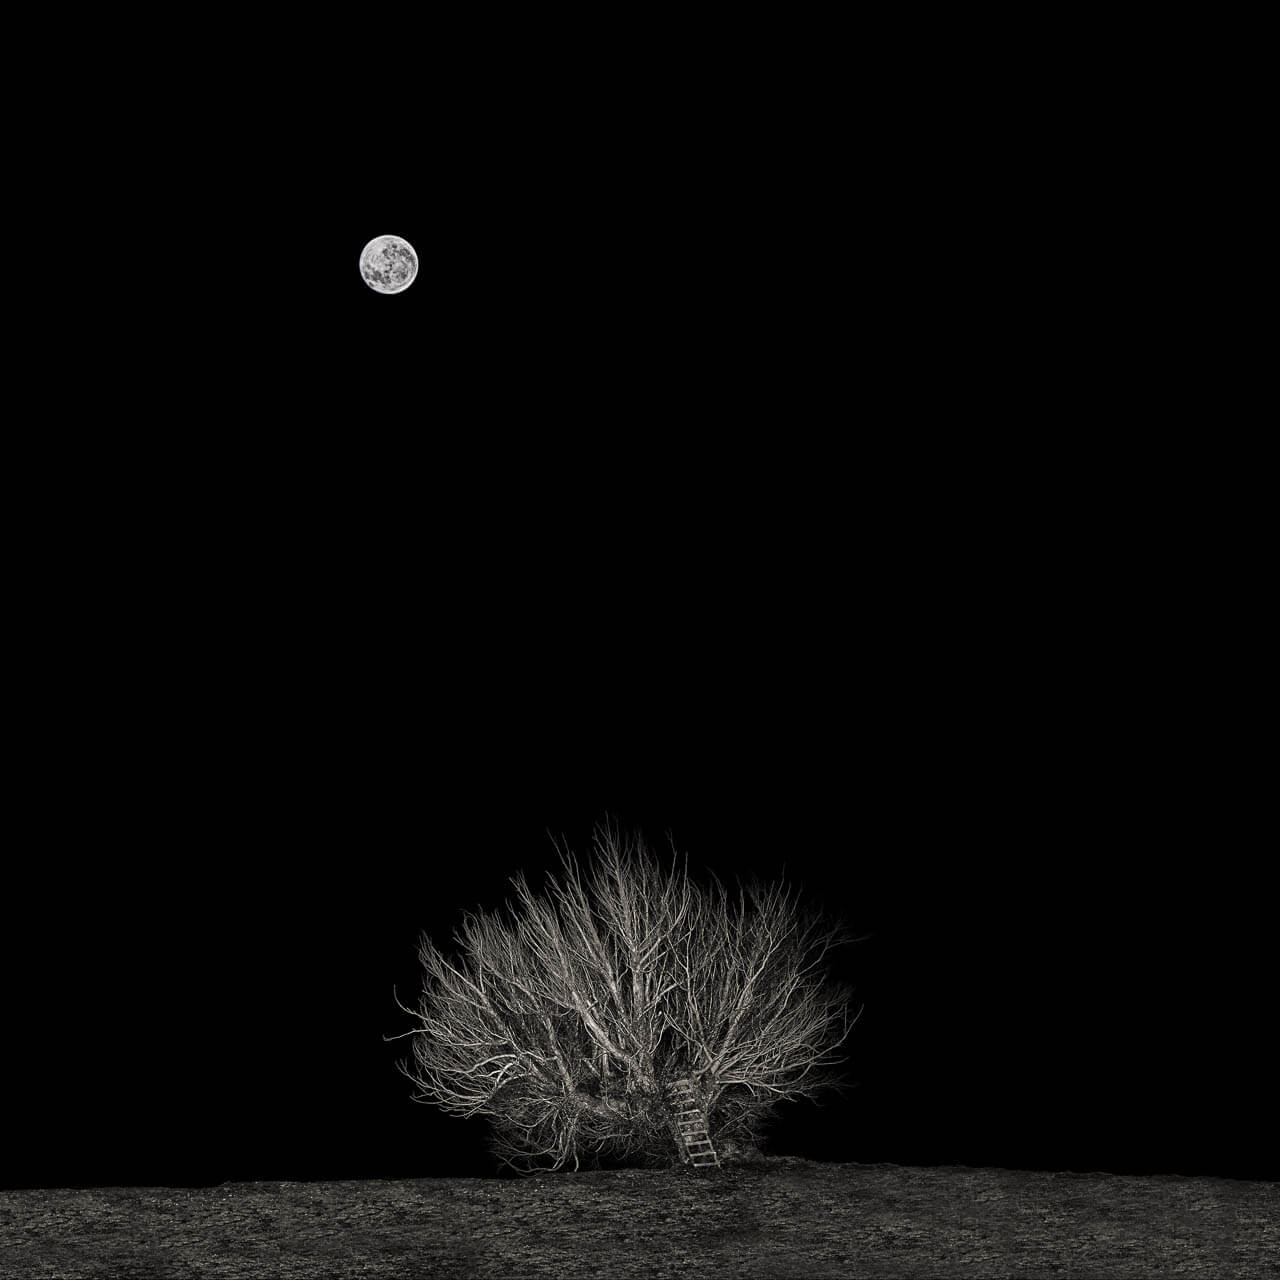 Willow Tree and Moon